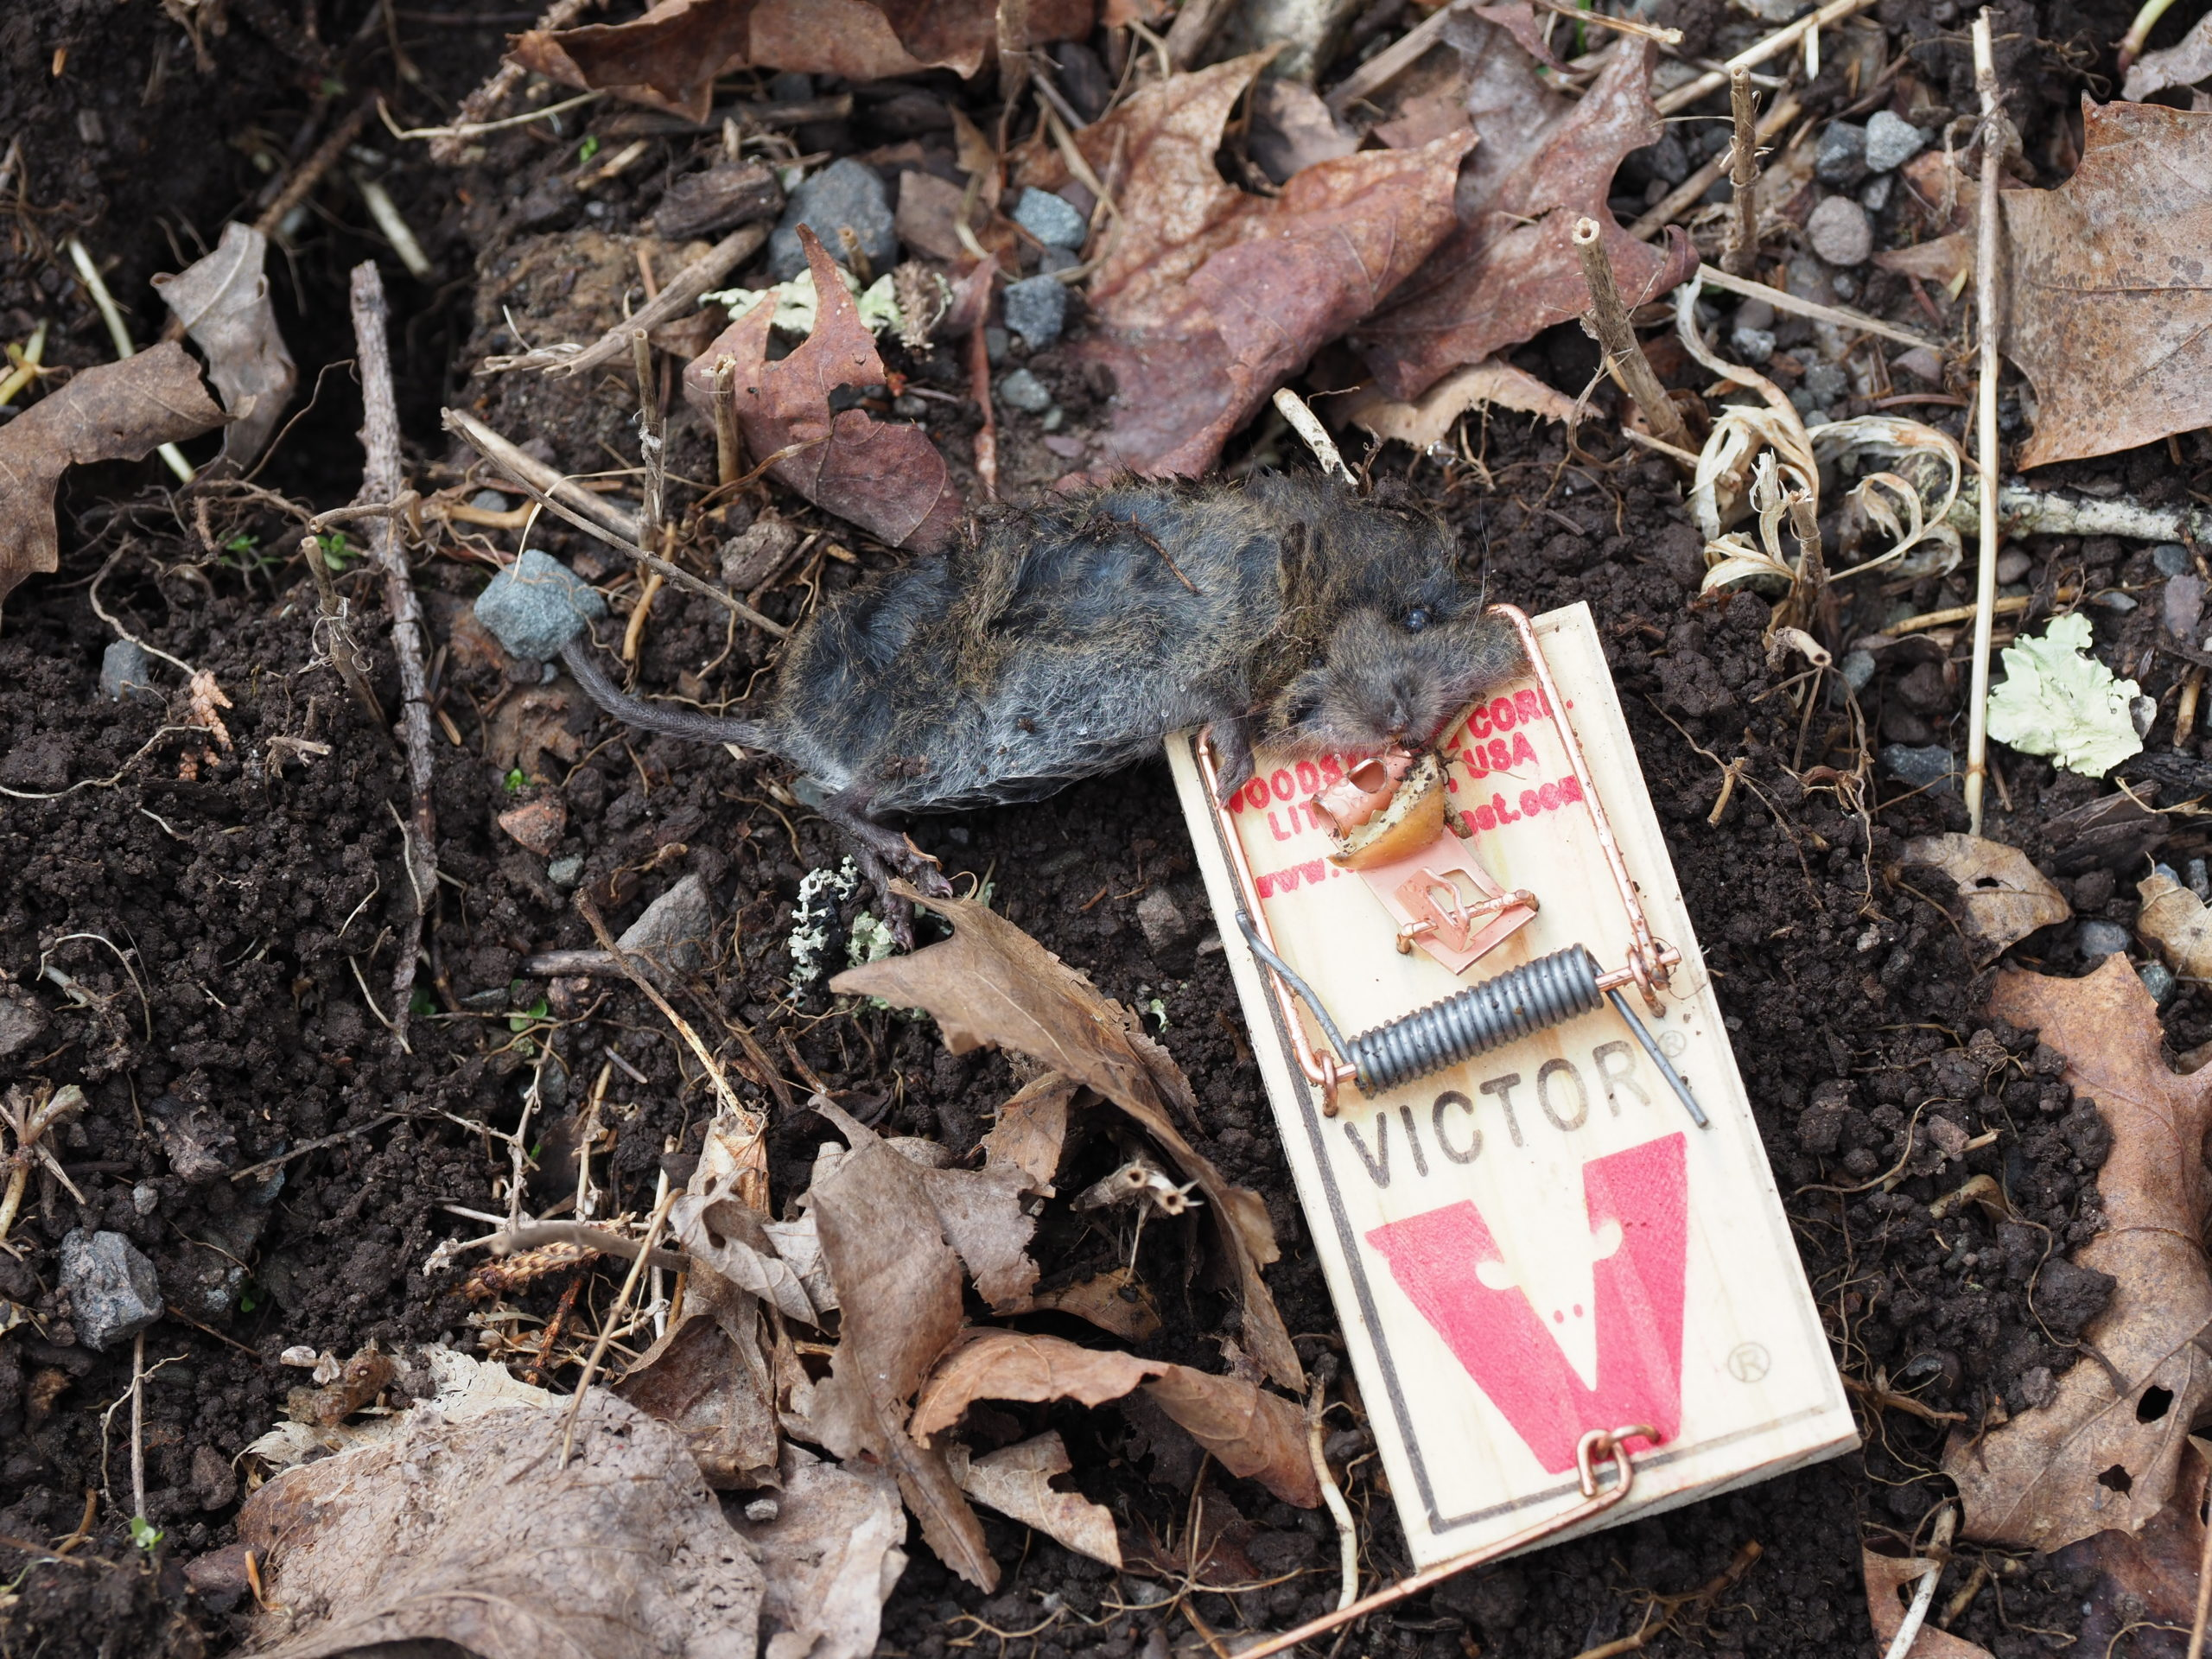 A vole emerged from its den to explore the mousetrap baited with a small piece of apple.  About the size of a field mouse, they have smaller eyes and can have darker fur with a shorter tail.